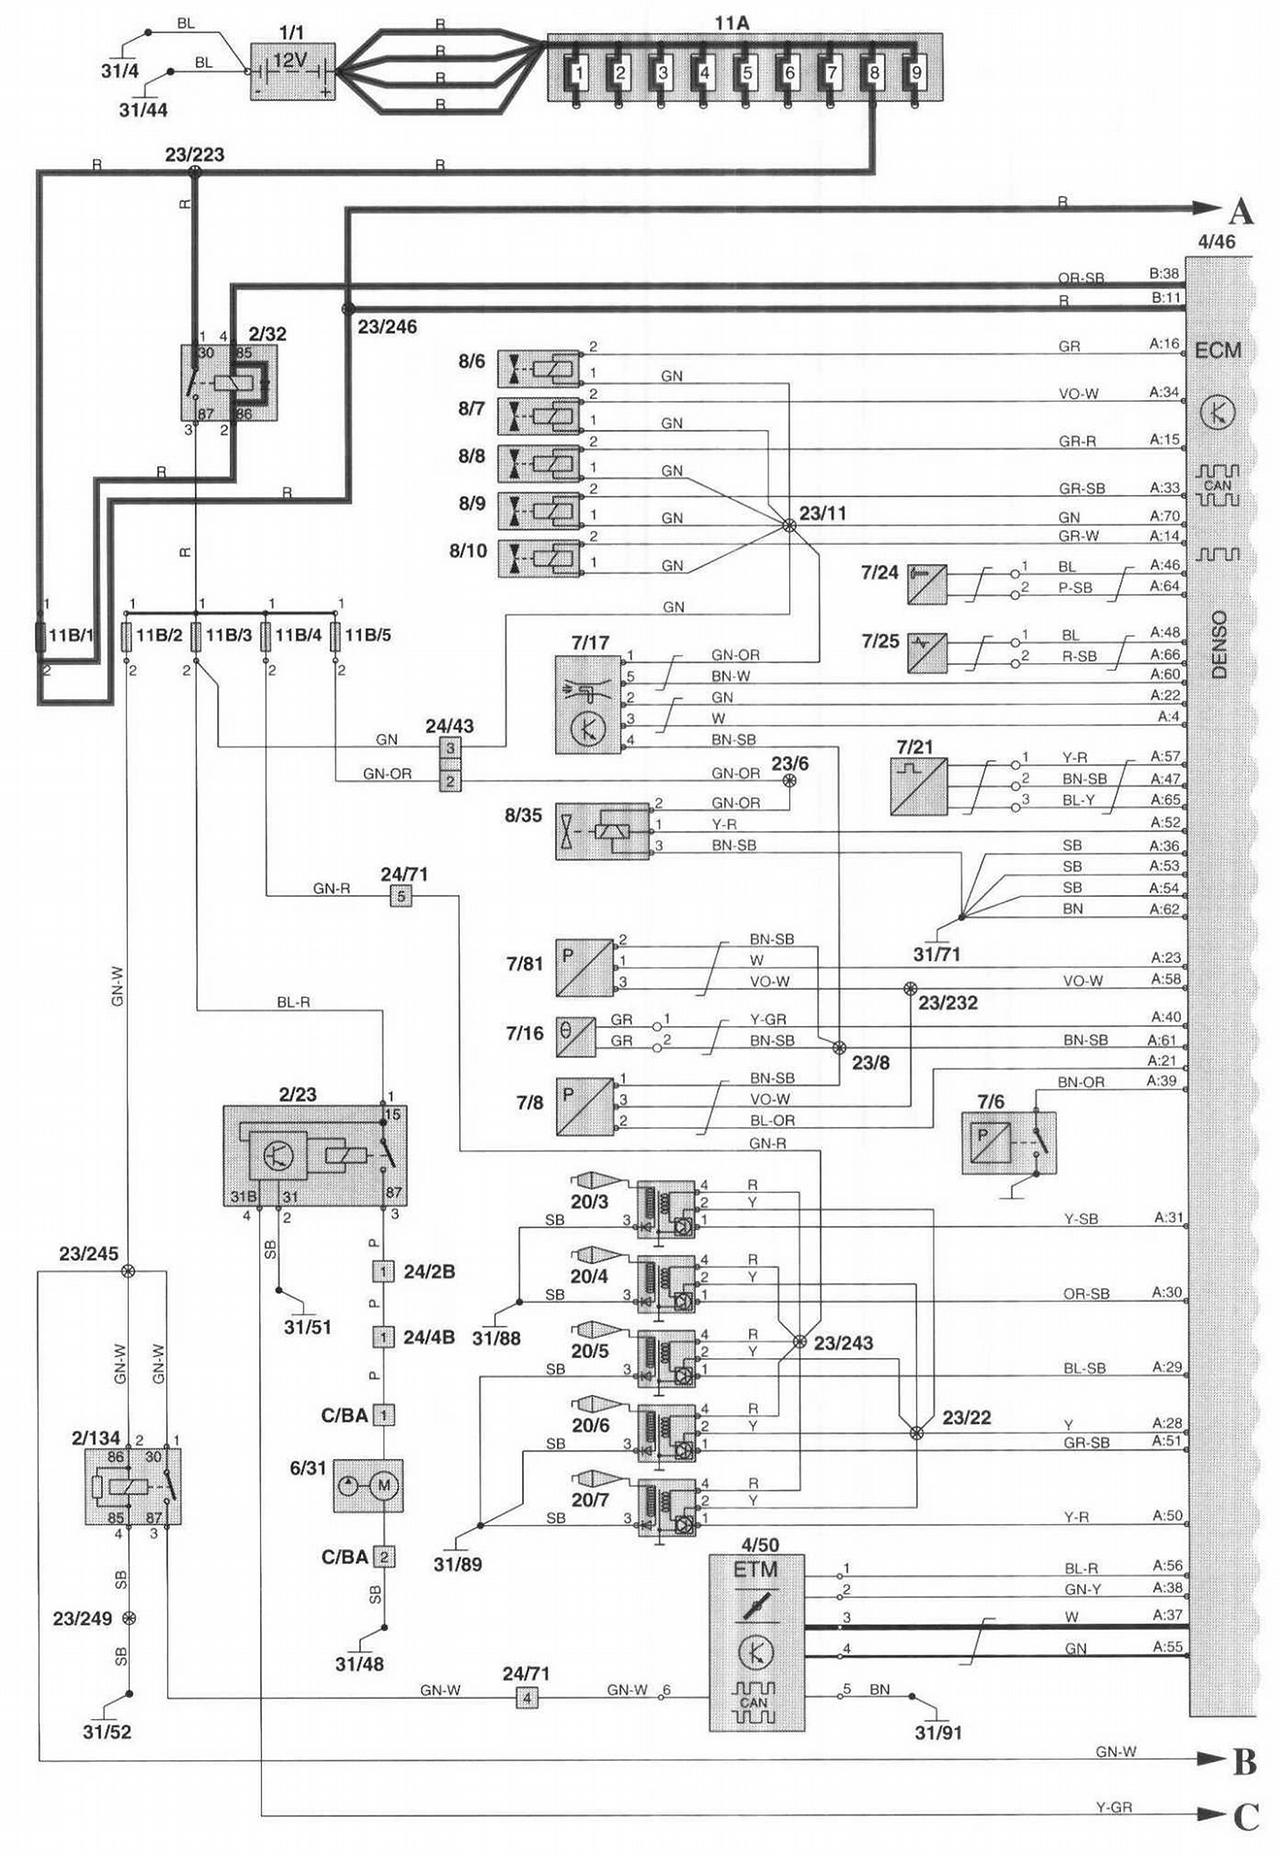 Volvo Xc90 Radio Wiring Diagram Great Design Of Acdelco Ac Delco Stereo Speakers Audio 2005